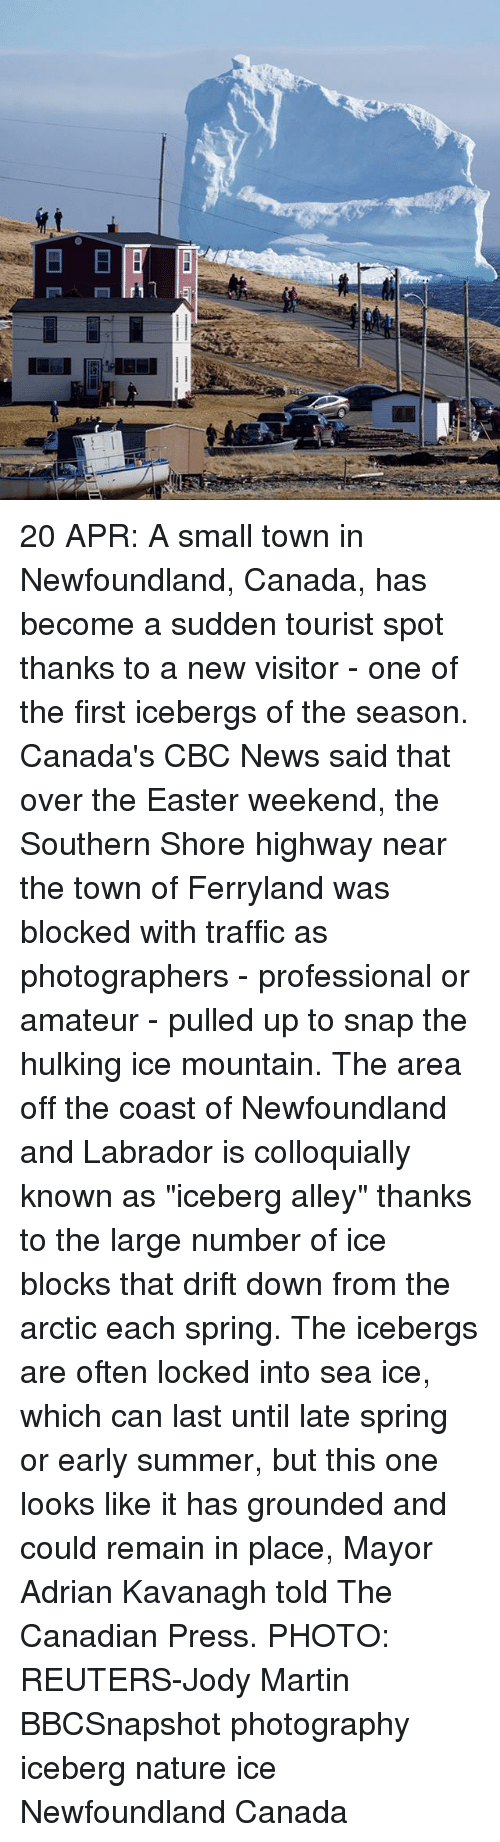 """newfoundland: E  LII 20 APR: A small town in Newfoundland, Canada, has become a sudden tourist spot thanks to a new visitor - one of the first icebergs of the season. Canada's CBC News said that over the Easter weekend, the Southern Shore highway near the town of Ferryland was blocked with traffic as photographers - professional or amateur - pulled up to snap the hulking ice mountain. The area off the coast of Newfoundland and Labrador is colloquially known as """"iceberg alley"""" thanks to the large number of ice blocks that drift down from the arctic each spring. The icebergs are often locked into sea ice, which can last until late spring or early summer, but this one looks like it has grounded and could remain in place, Mayor Adrian Kavanagh told The Canadian Press. PHOTO: REUTERS-Jody Martin BBCSnapshot photography iceberg nature ice Newfoundland Canada"""